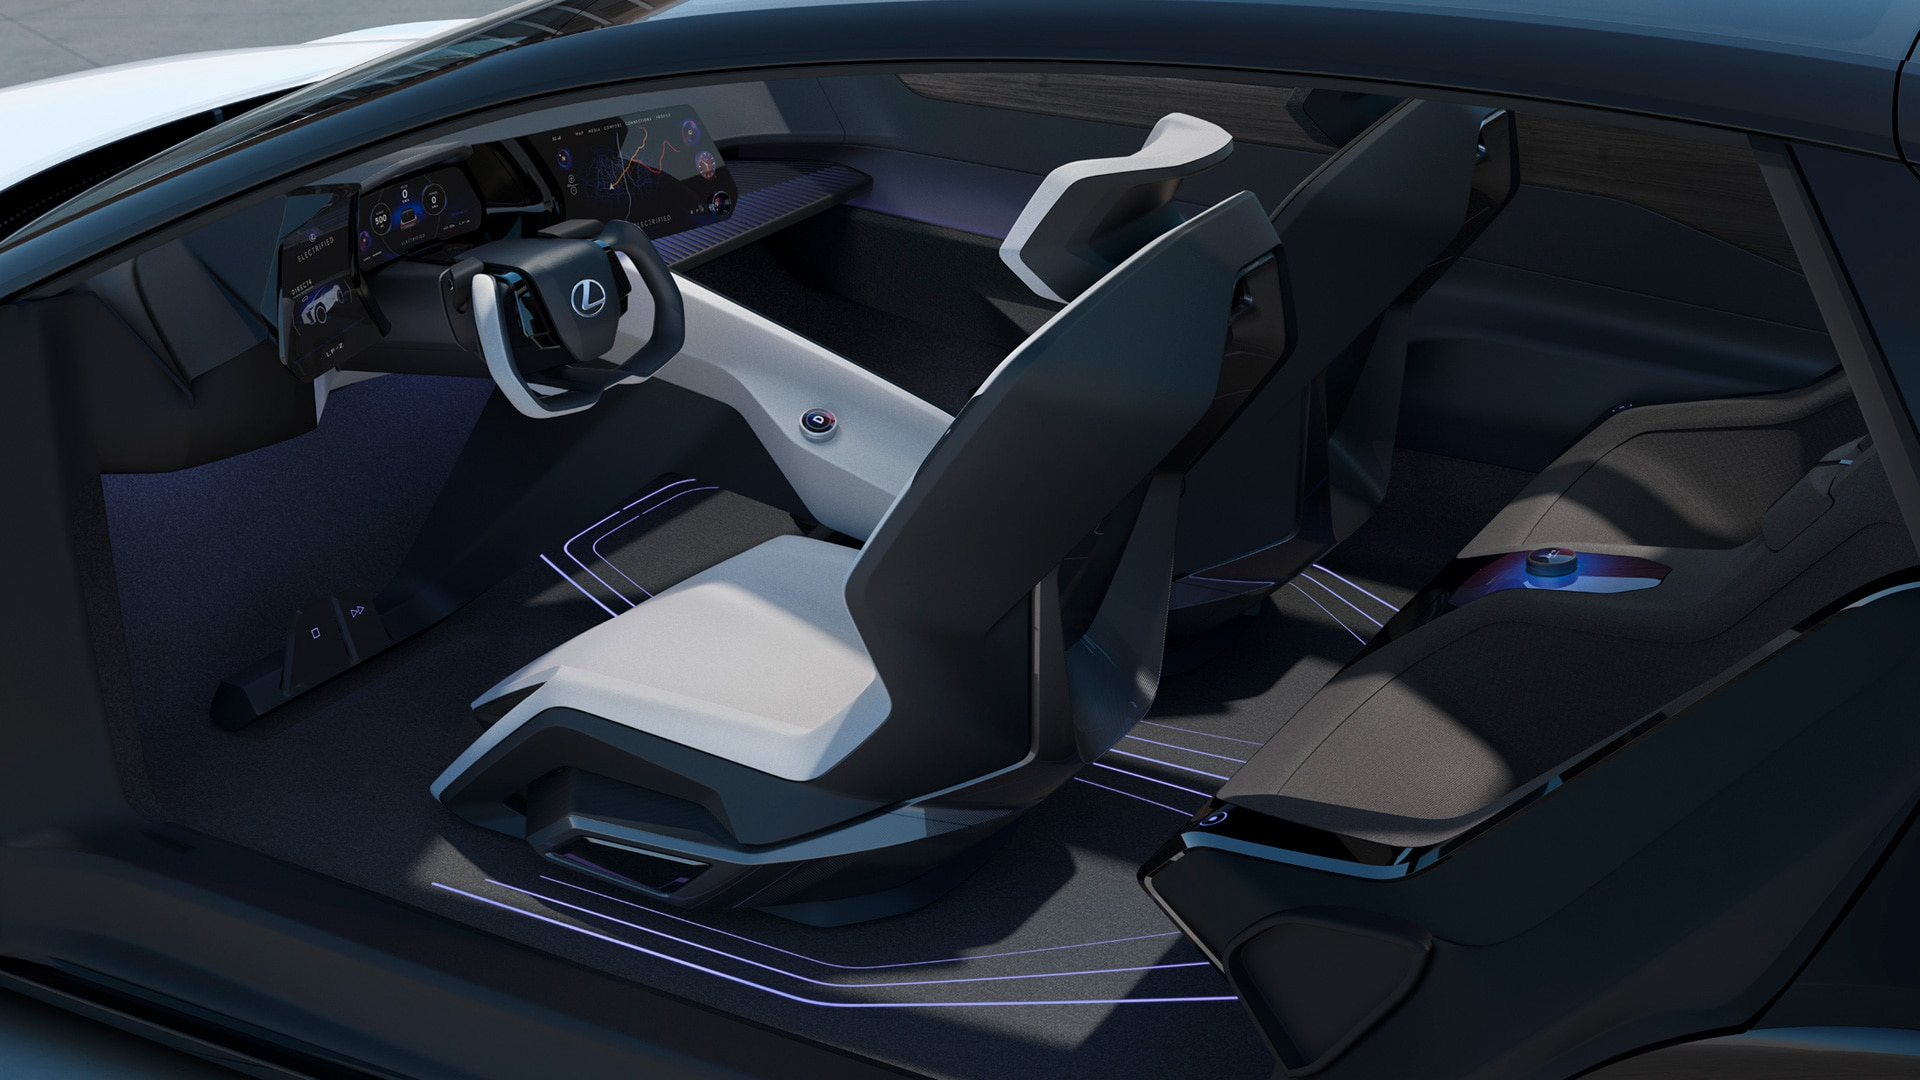 The interior is more radical and have shell seats with a distinctive geometric appearance and are surrounded by various lighting elements. On the other hand, it is quite sparse, except for the cluster of screens that hug the steering wheel.